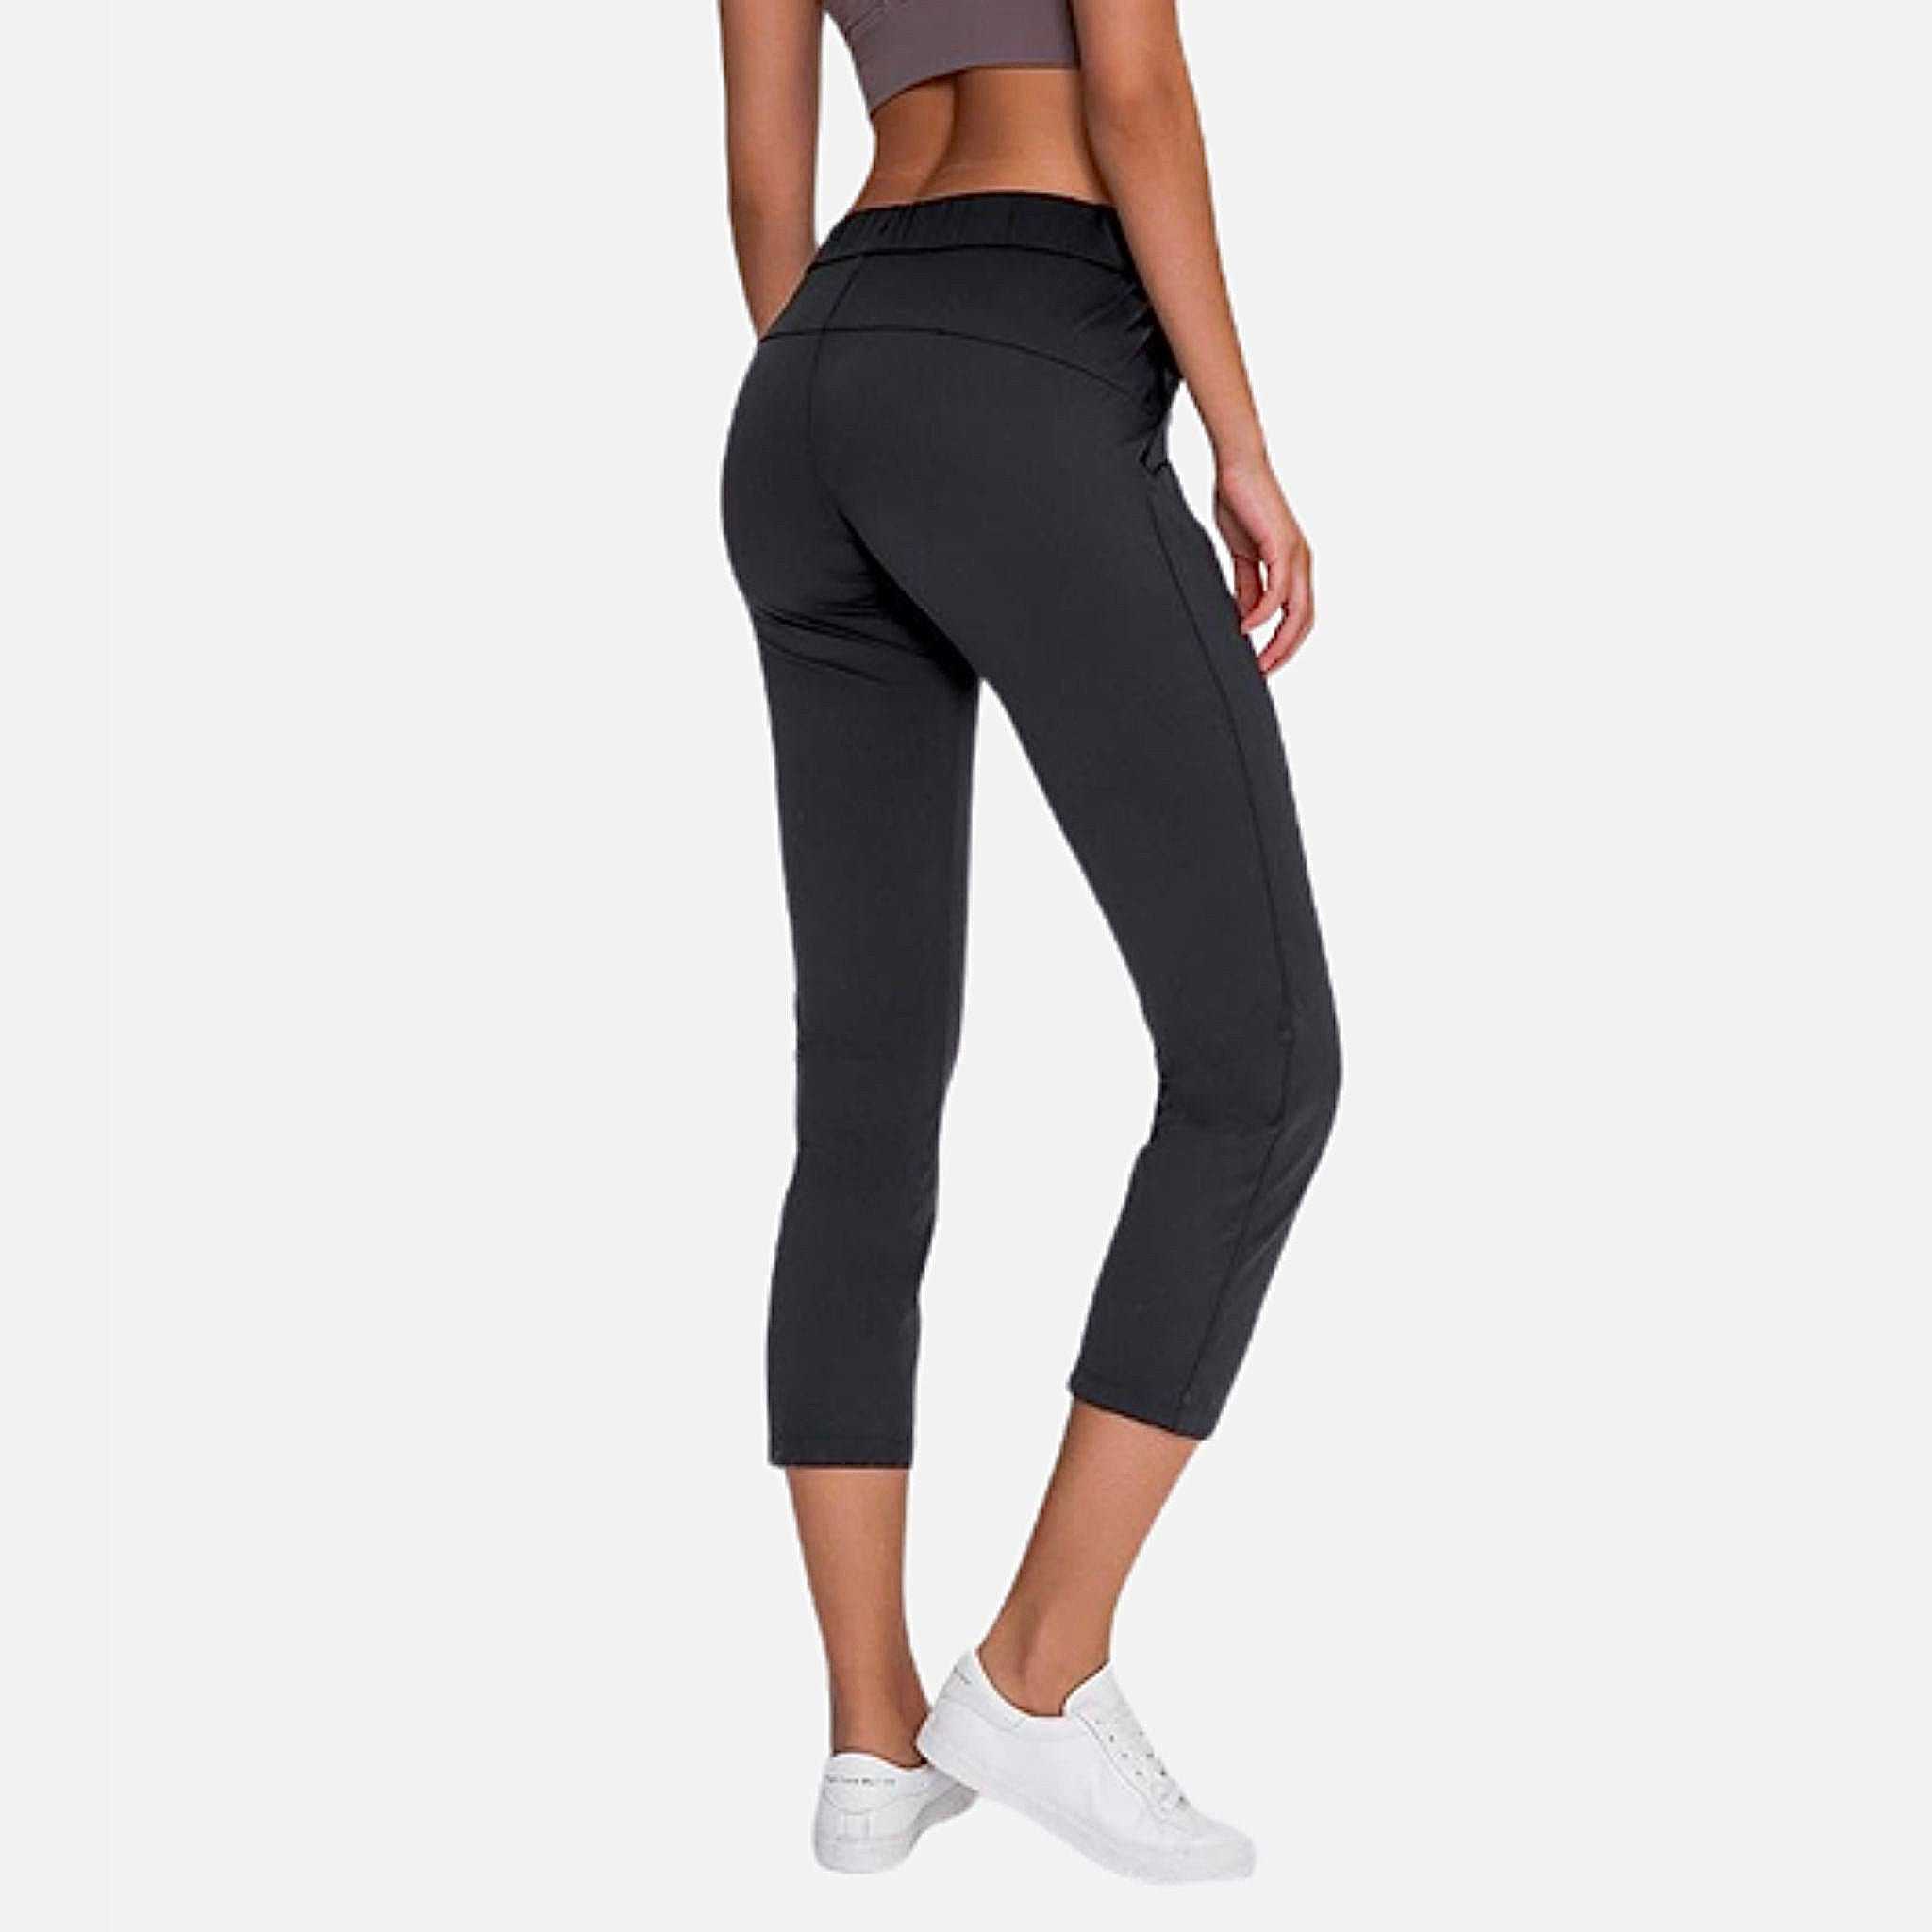 miFit Drawstring Joggers     Cropped mid-rise drawstring waist naked-feel fabric black color Training Gym Yoga Women's Sport Fitness Sportswear Capri Pants